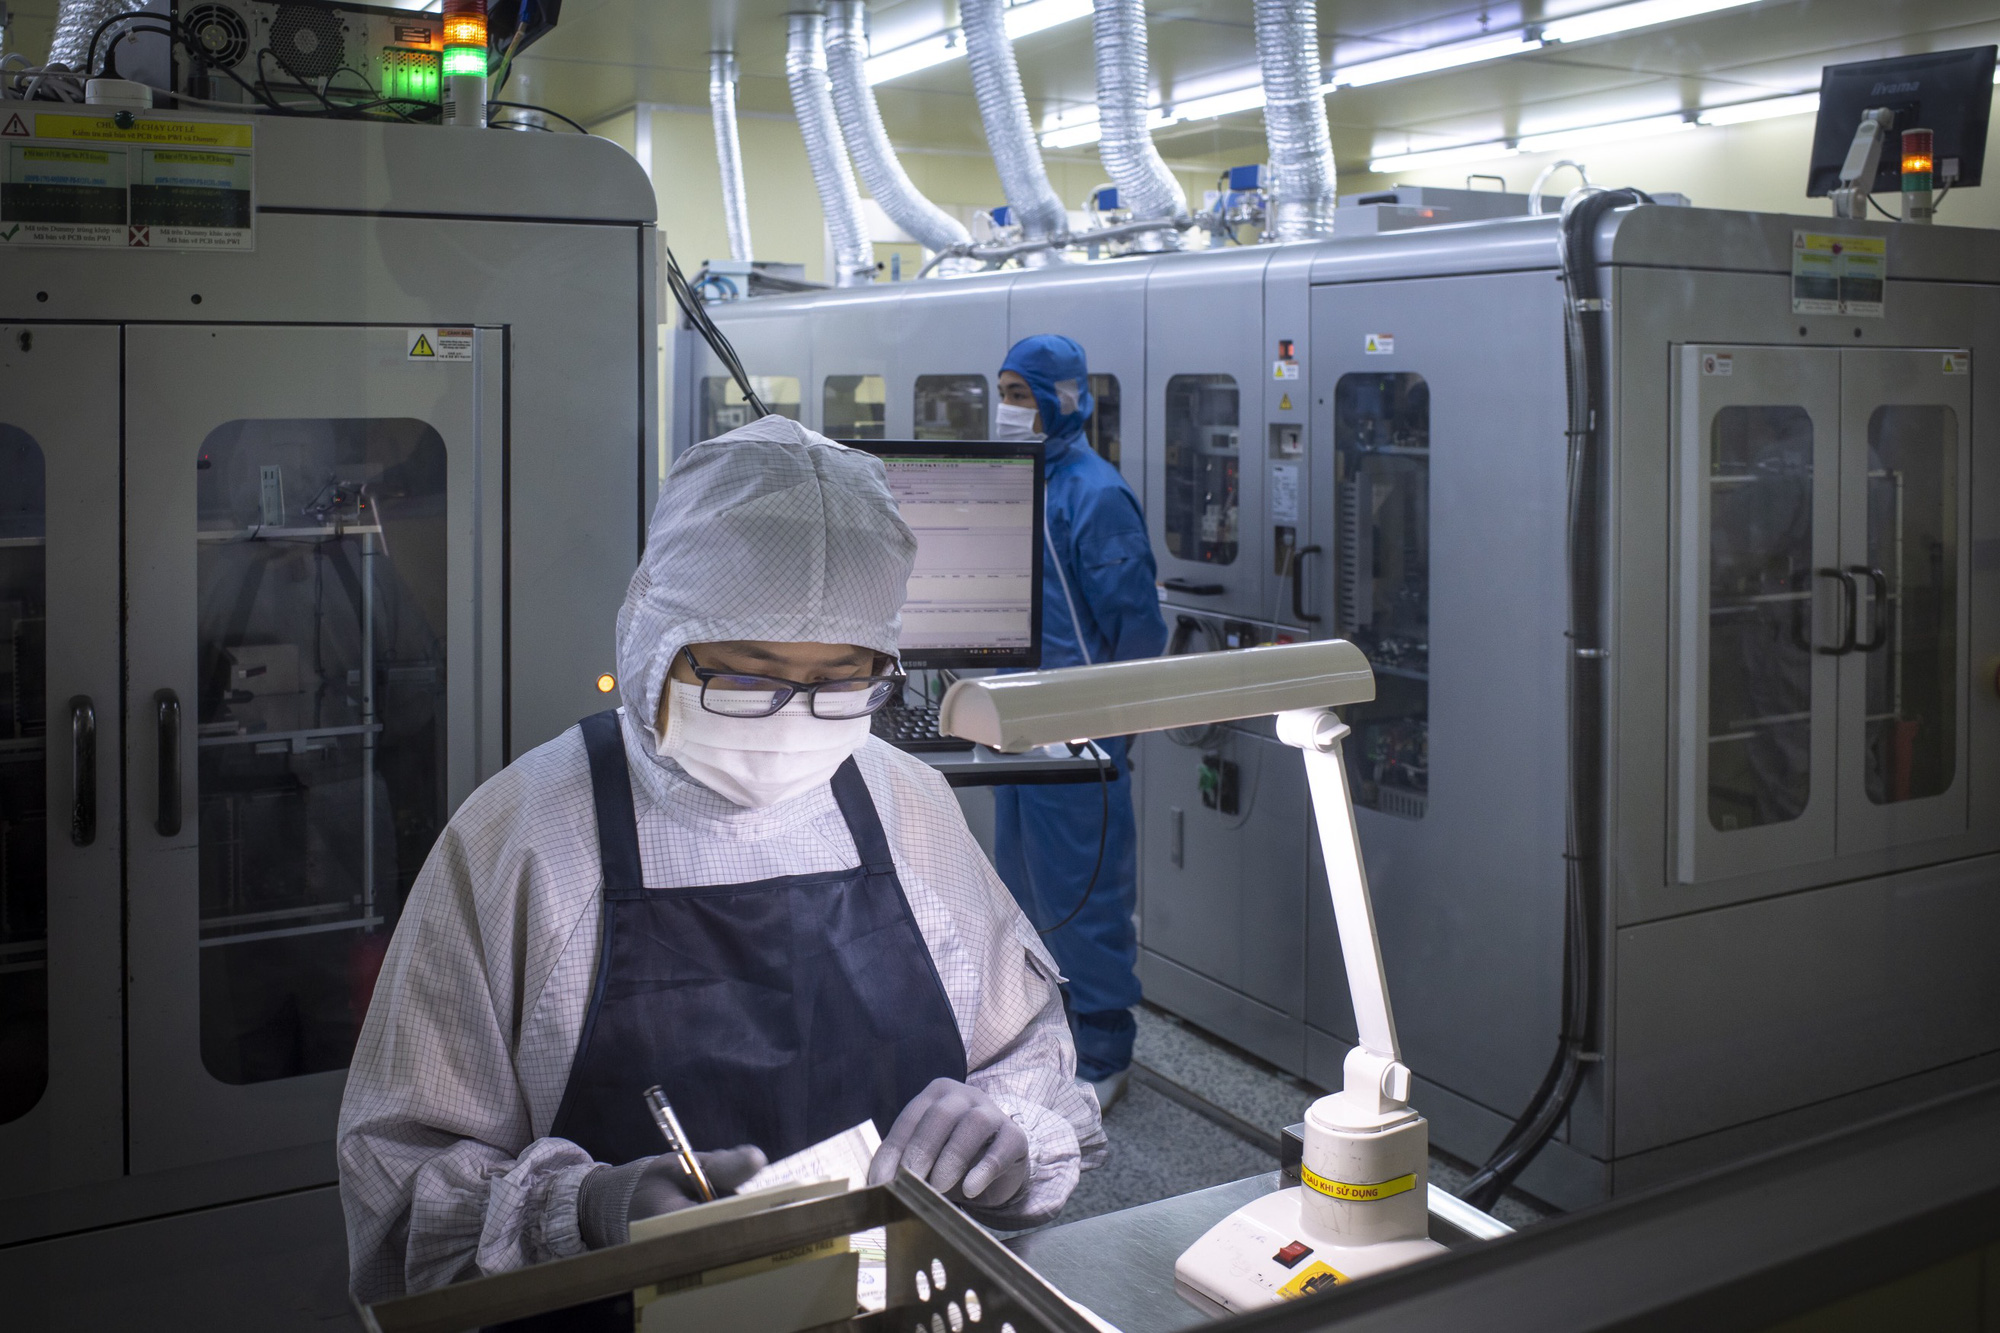 Northern Vietnam's previous COVID-19 hotbed in hunger for factory workers